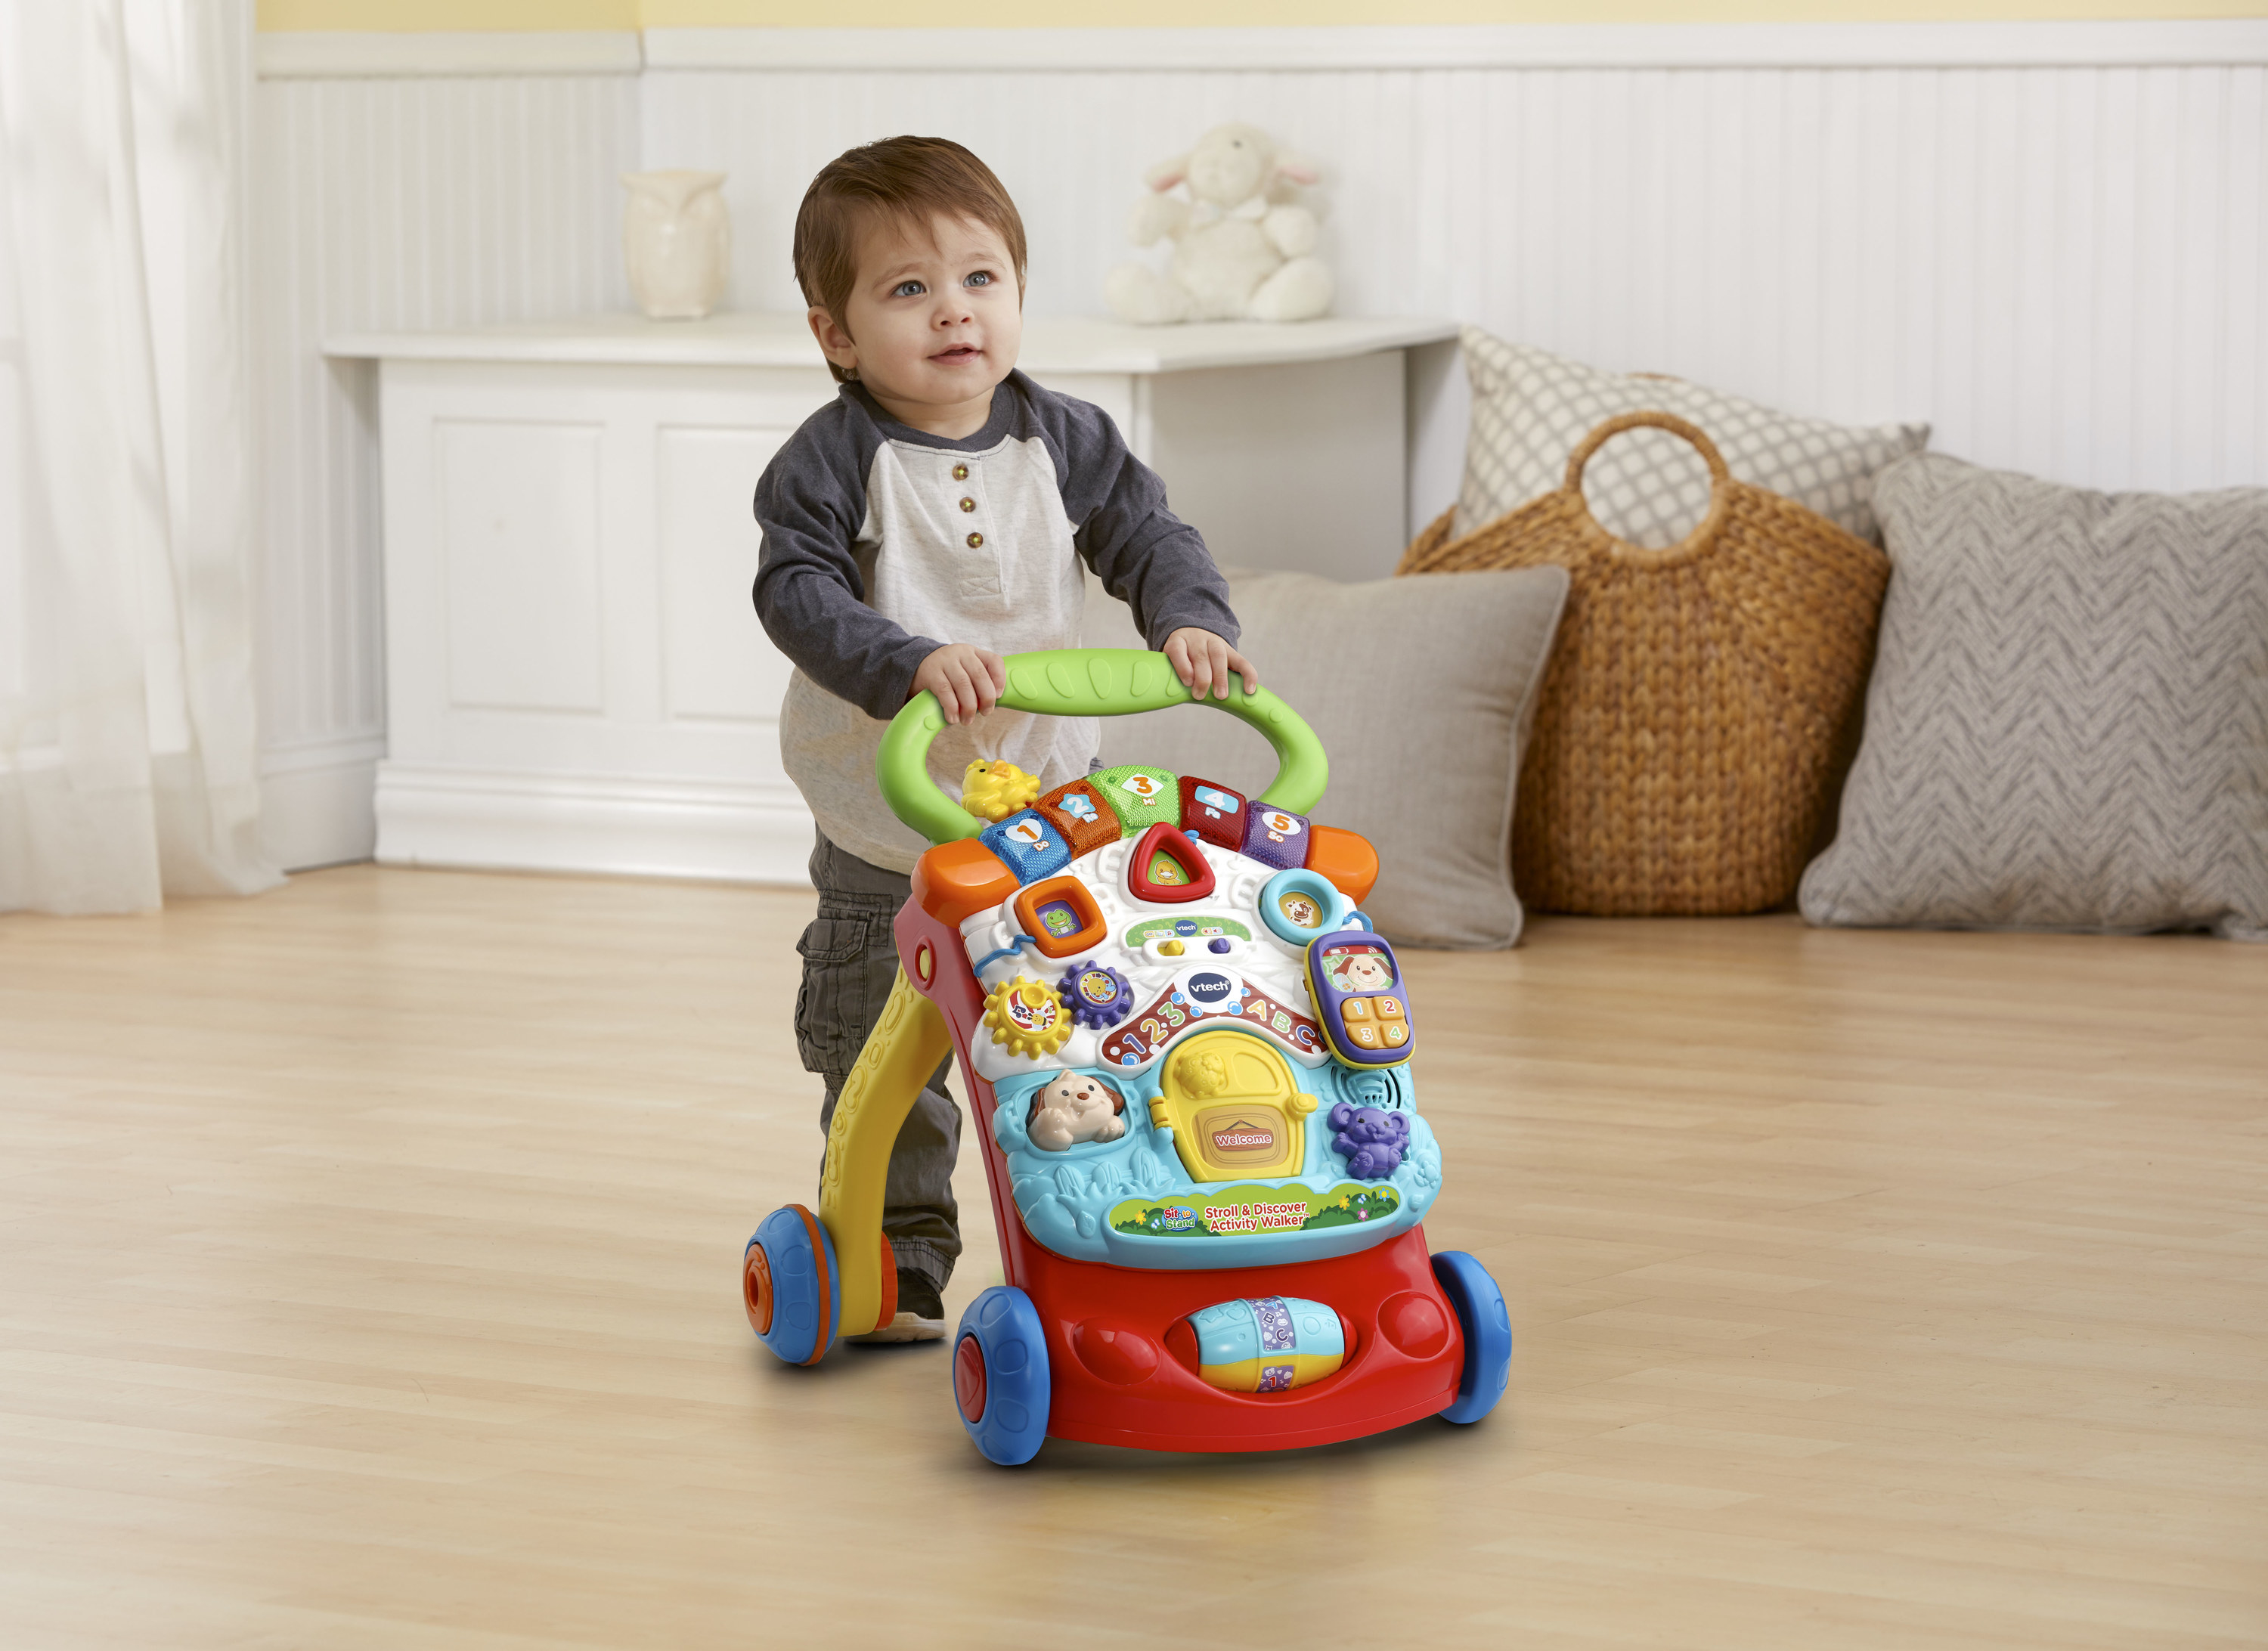 toddler using an activity walker to stroll across the living room floor